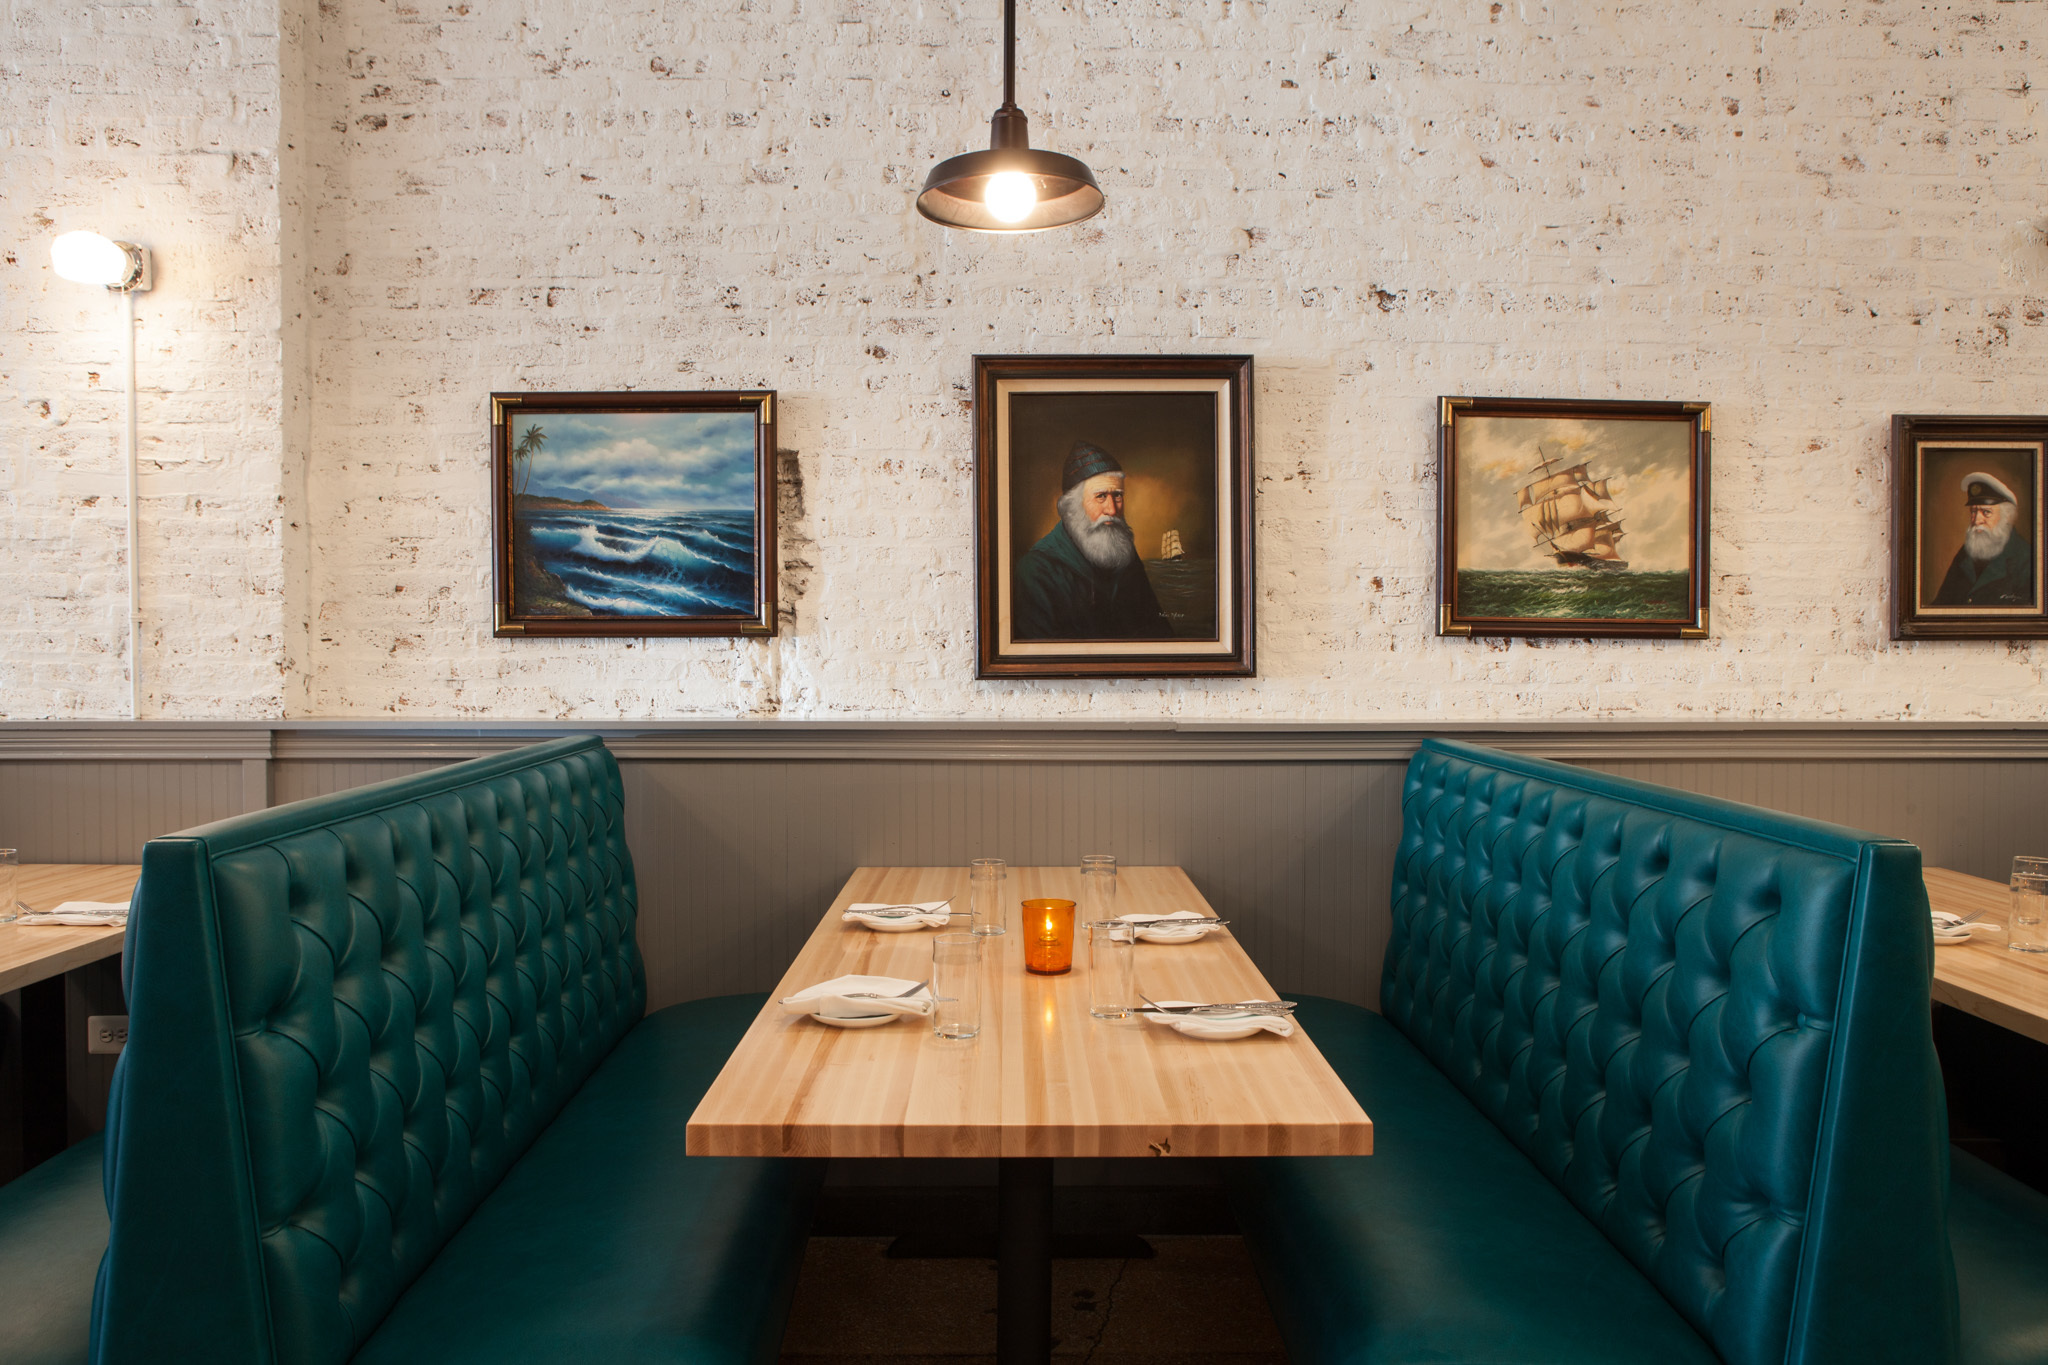 Sink | Swim is a seafood restaurant from the Scofflaw group.